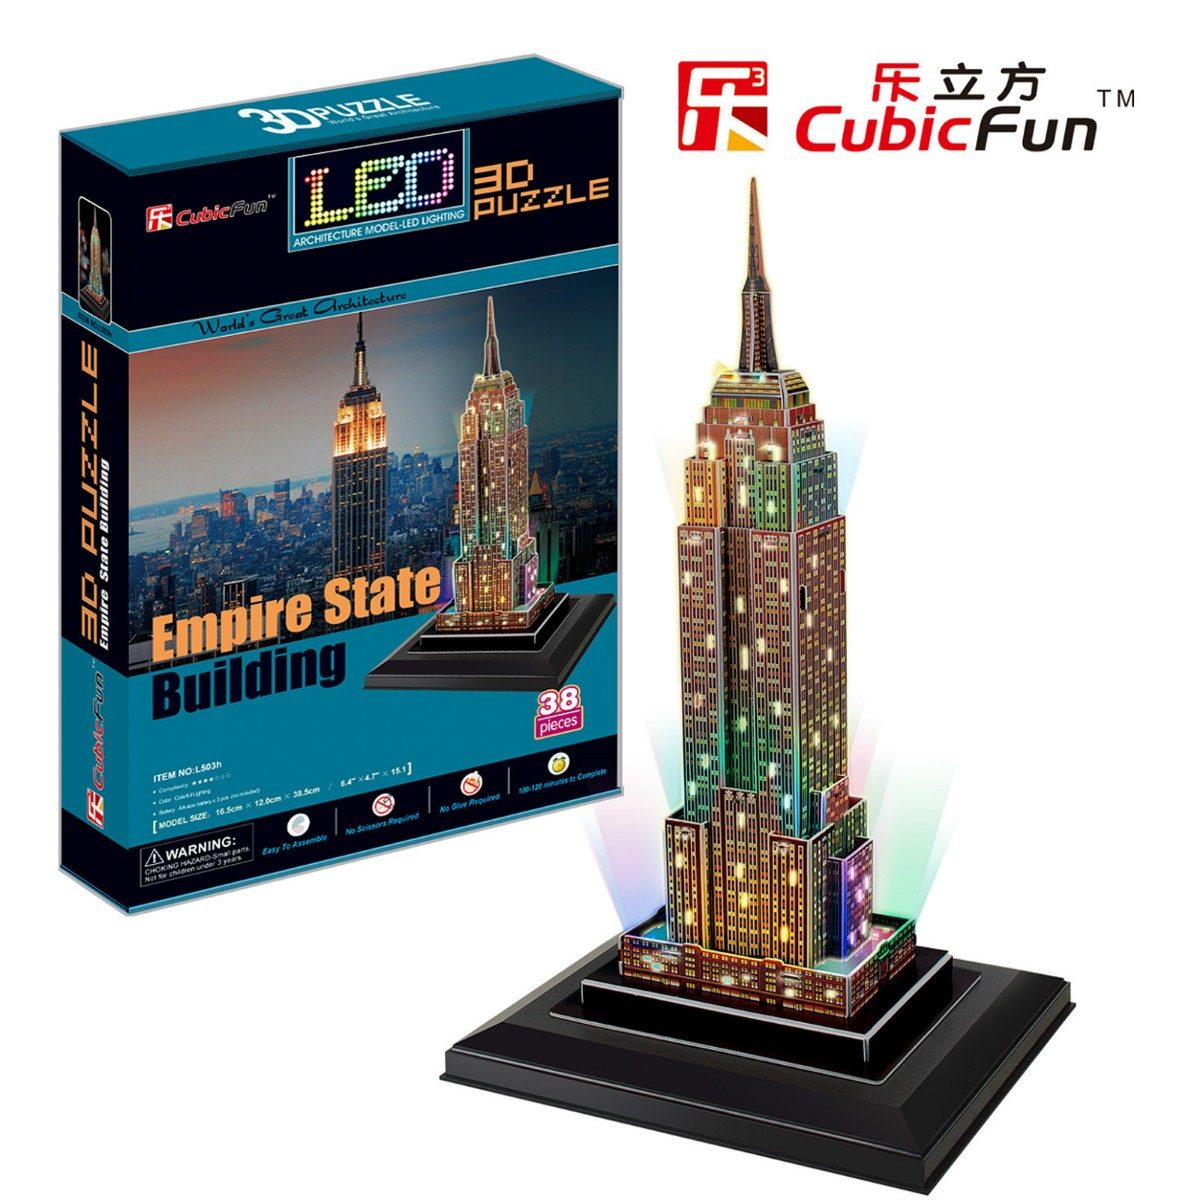 cubic-fun-puzzle-3d-mit-led-empire-state-building-38-teile-puzzle-cubic-fun-l503h